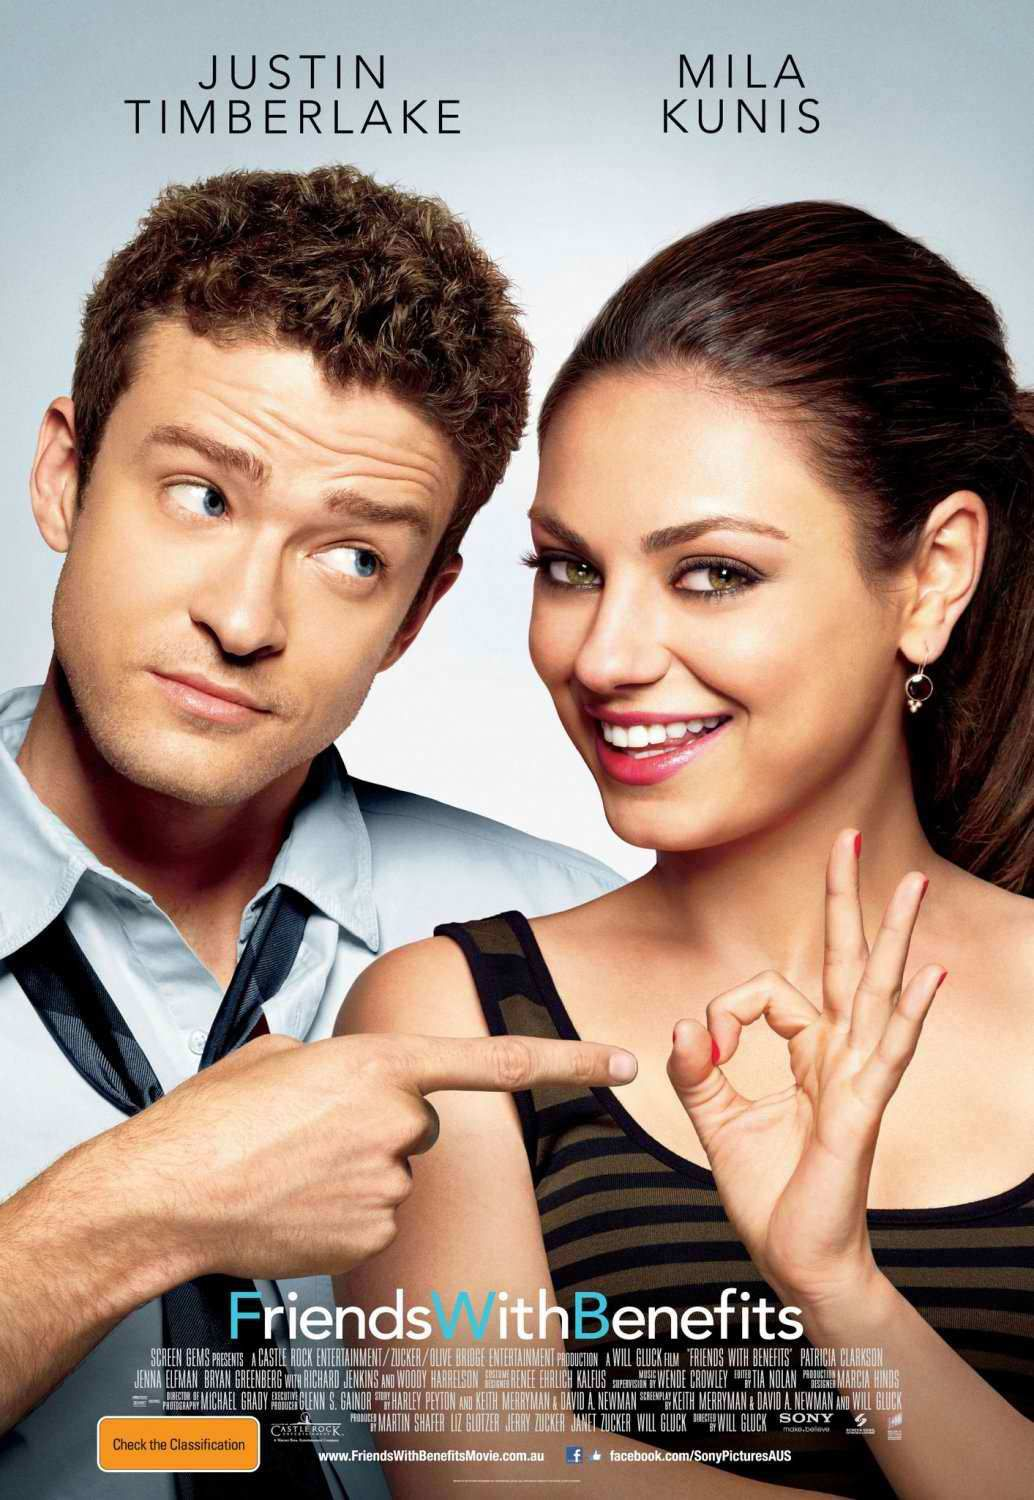 Friends with Benefits 2011 Movie Free Download 720p BluRay